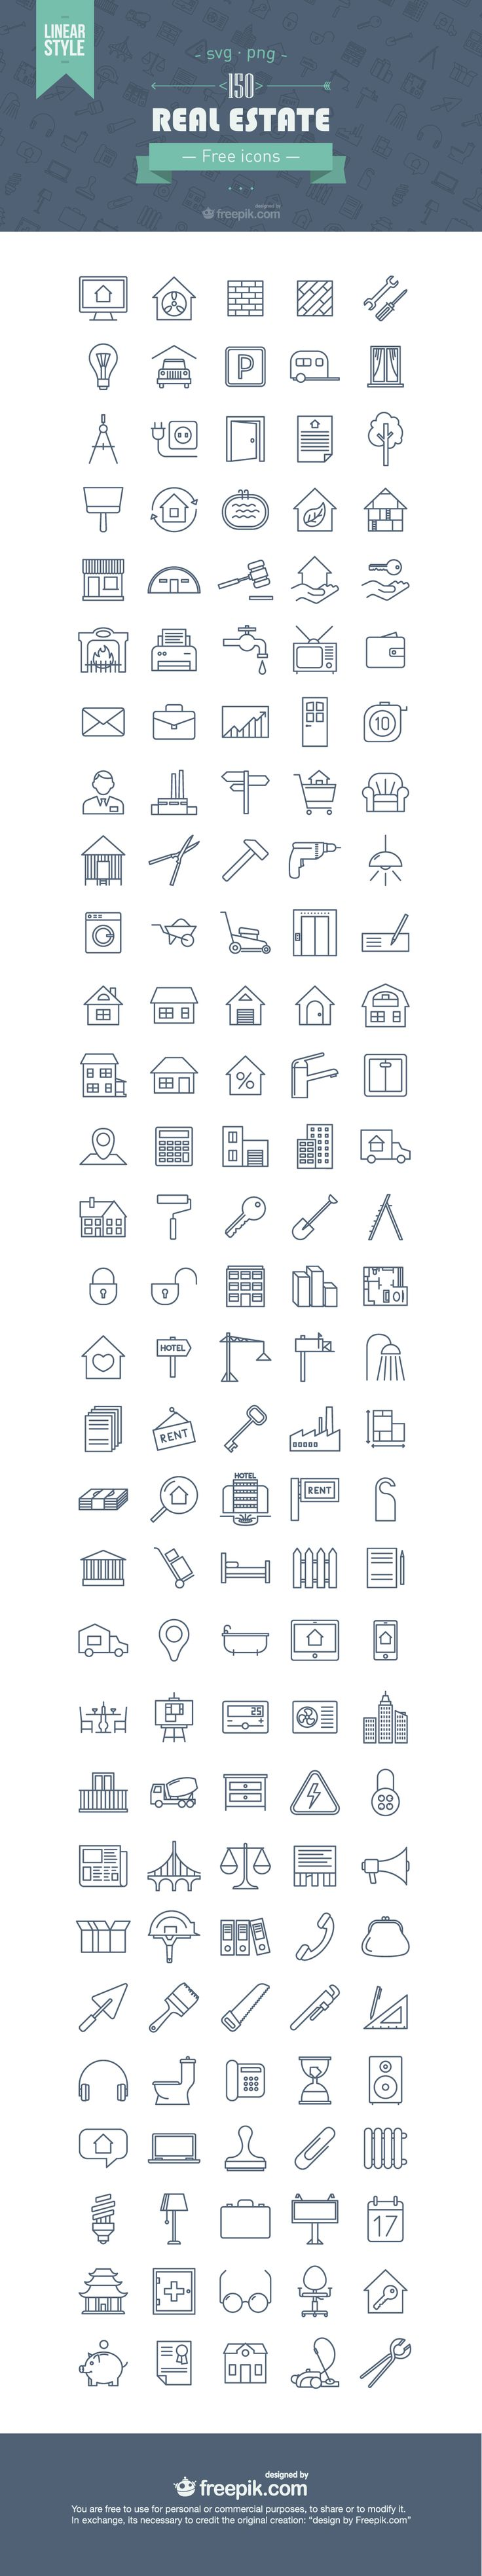 best ideas about real estate flyers real estate cld exclusive 150 gorgeous real estate line icons png svg